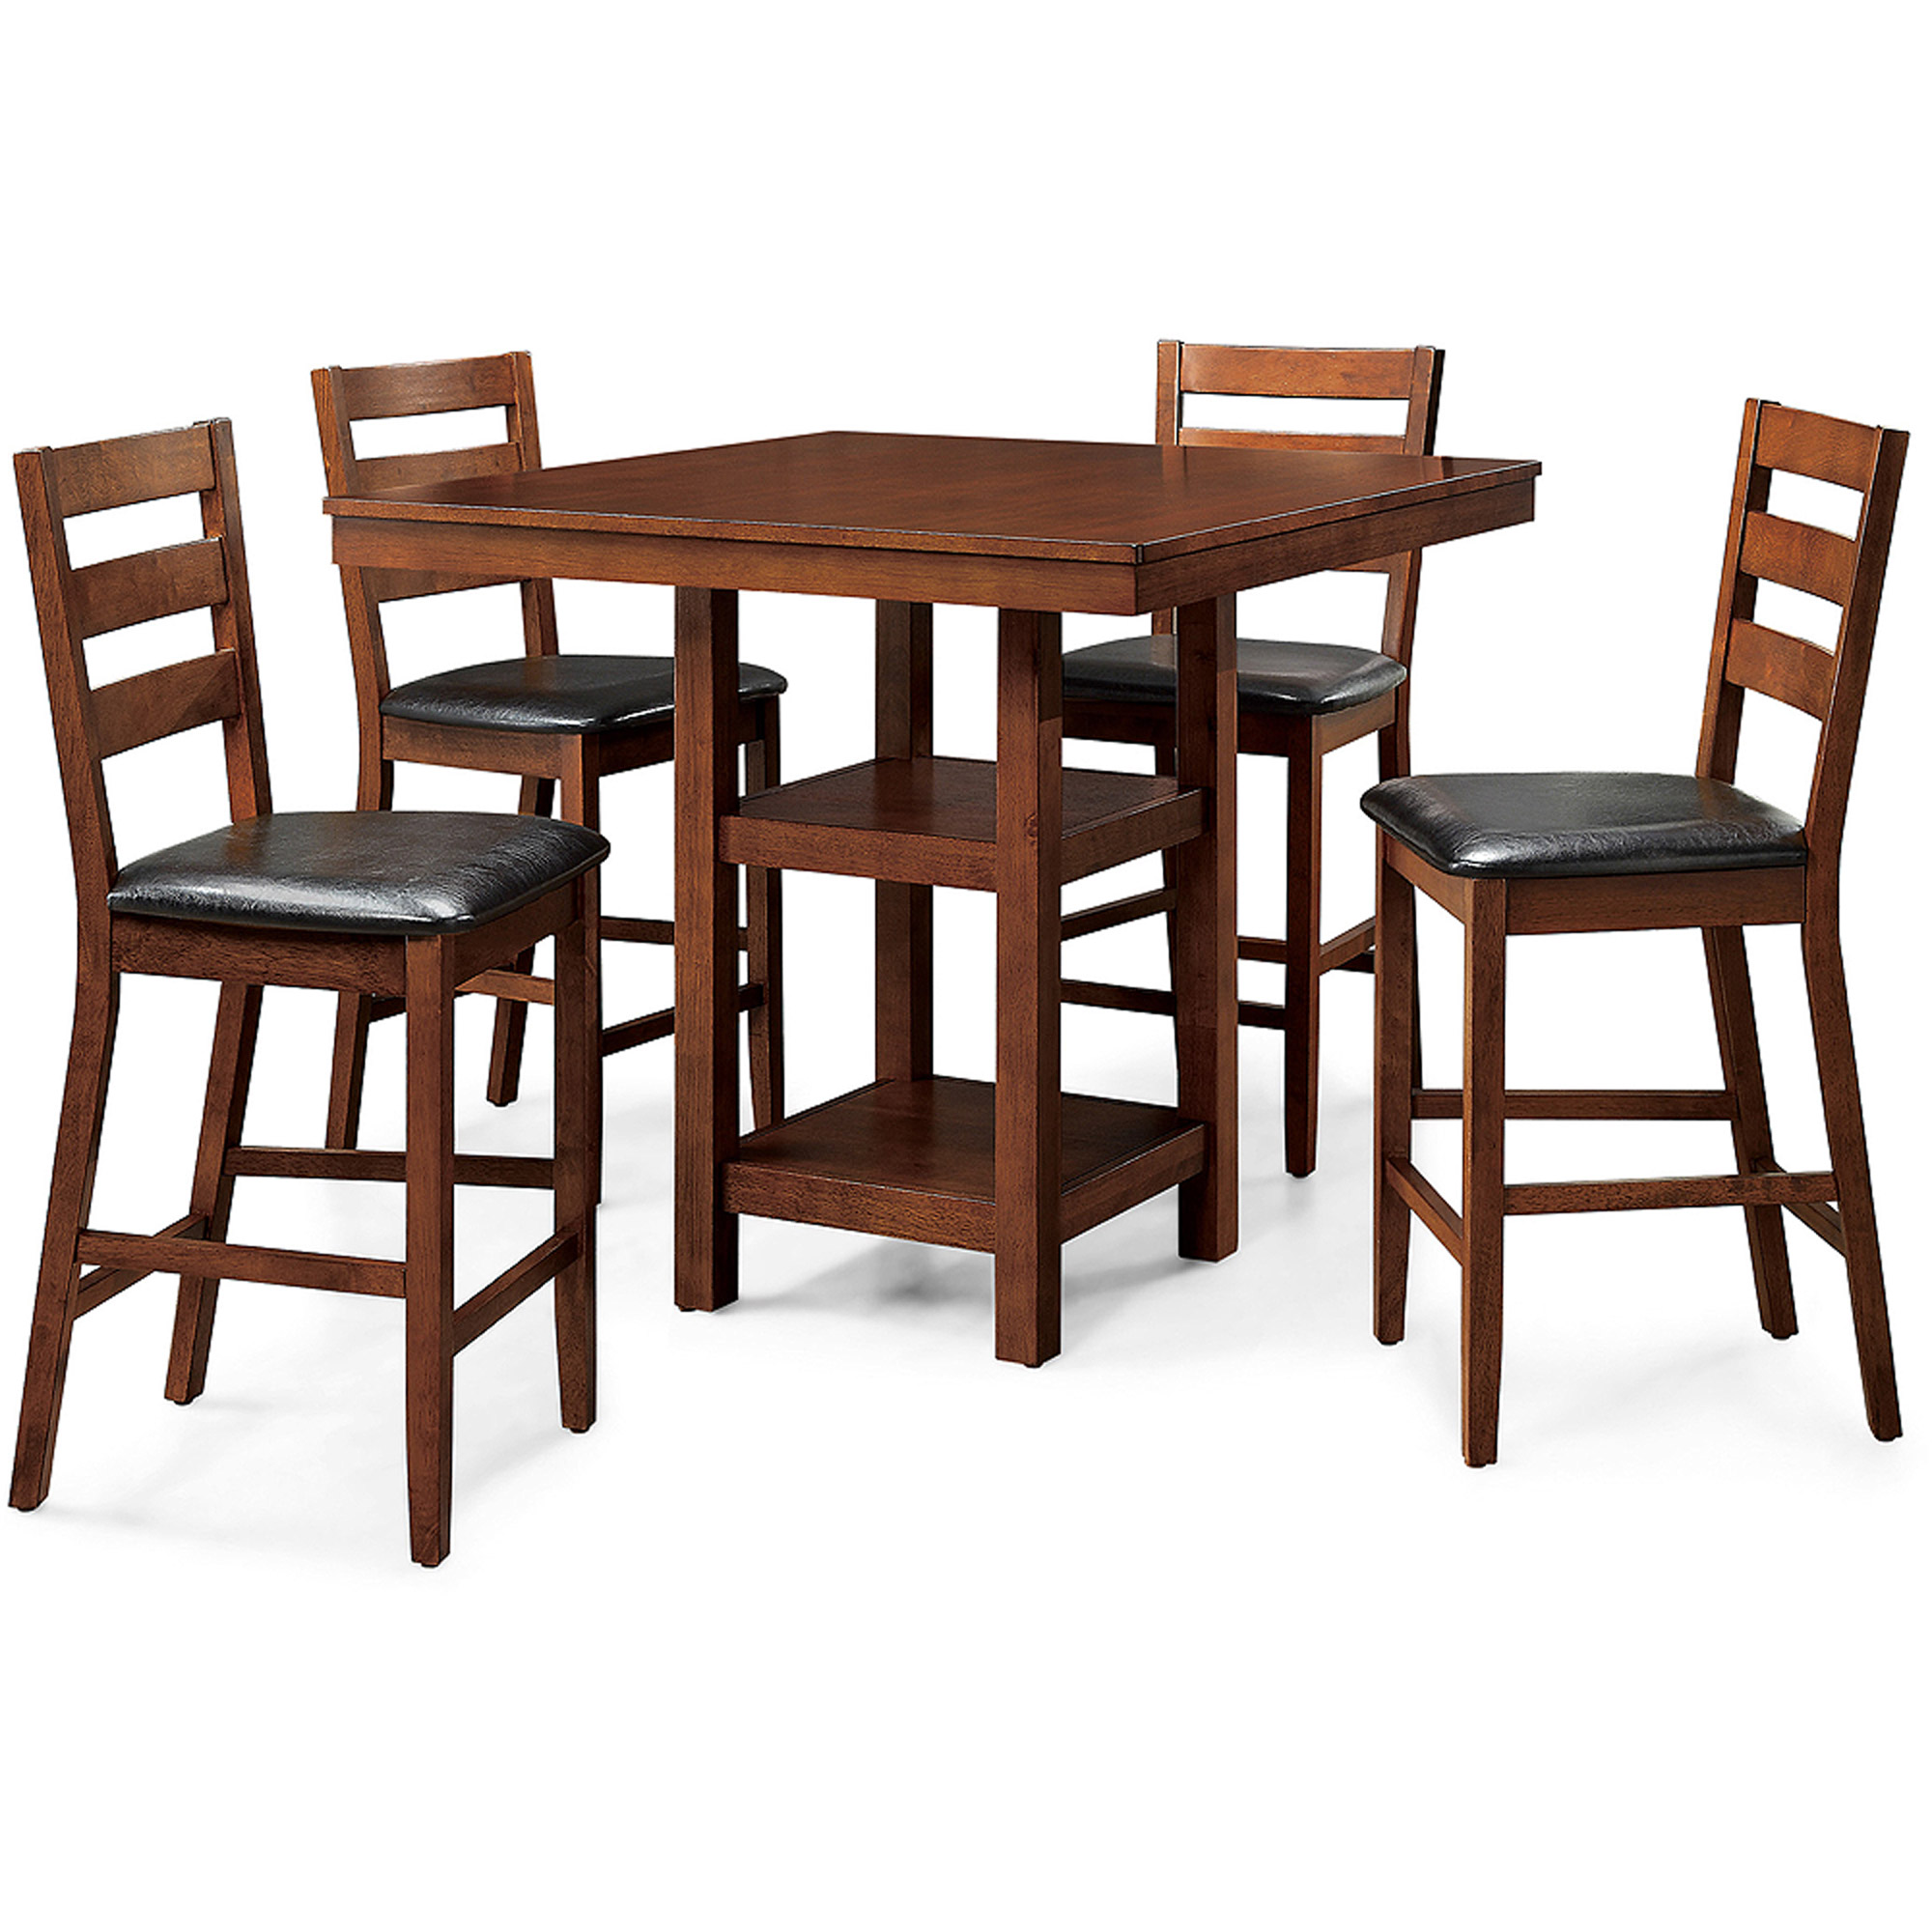 Better Homes U0026 Gardens Dalton Park 5 Piece Counter Height Dining Set,  Includes Table